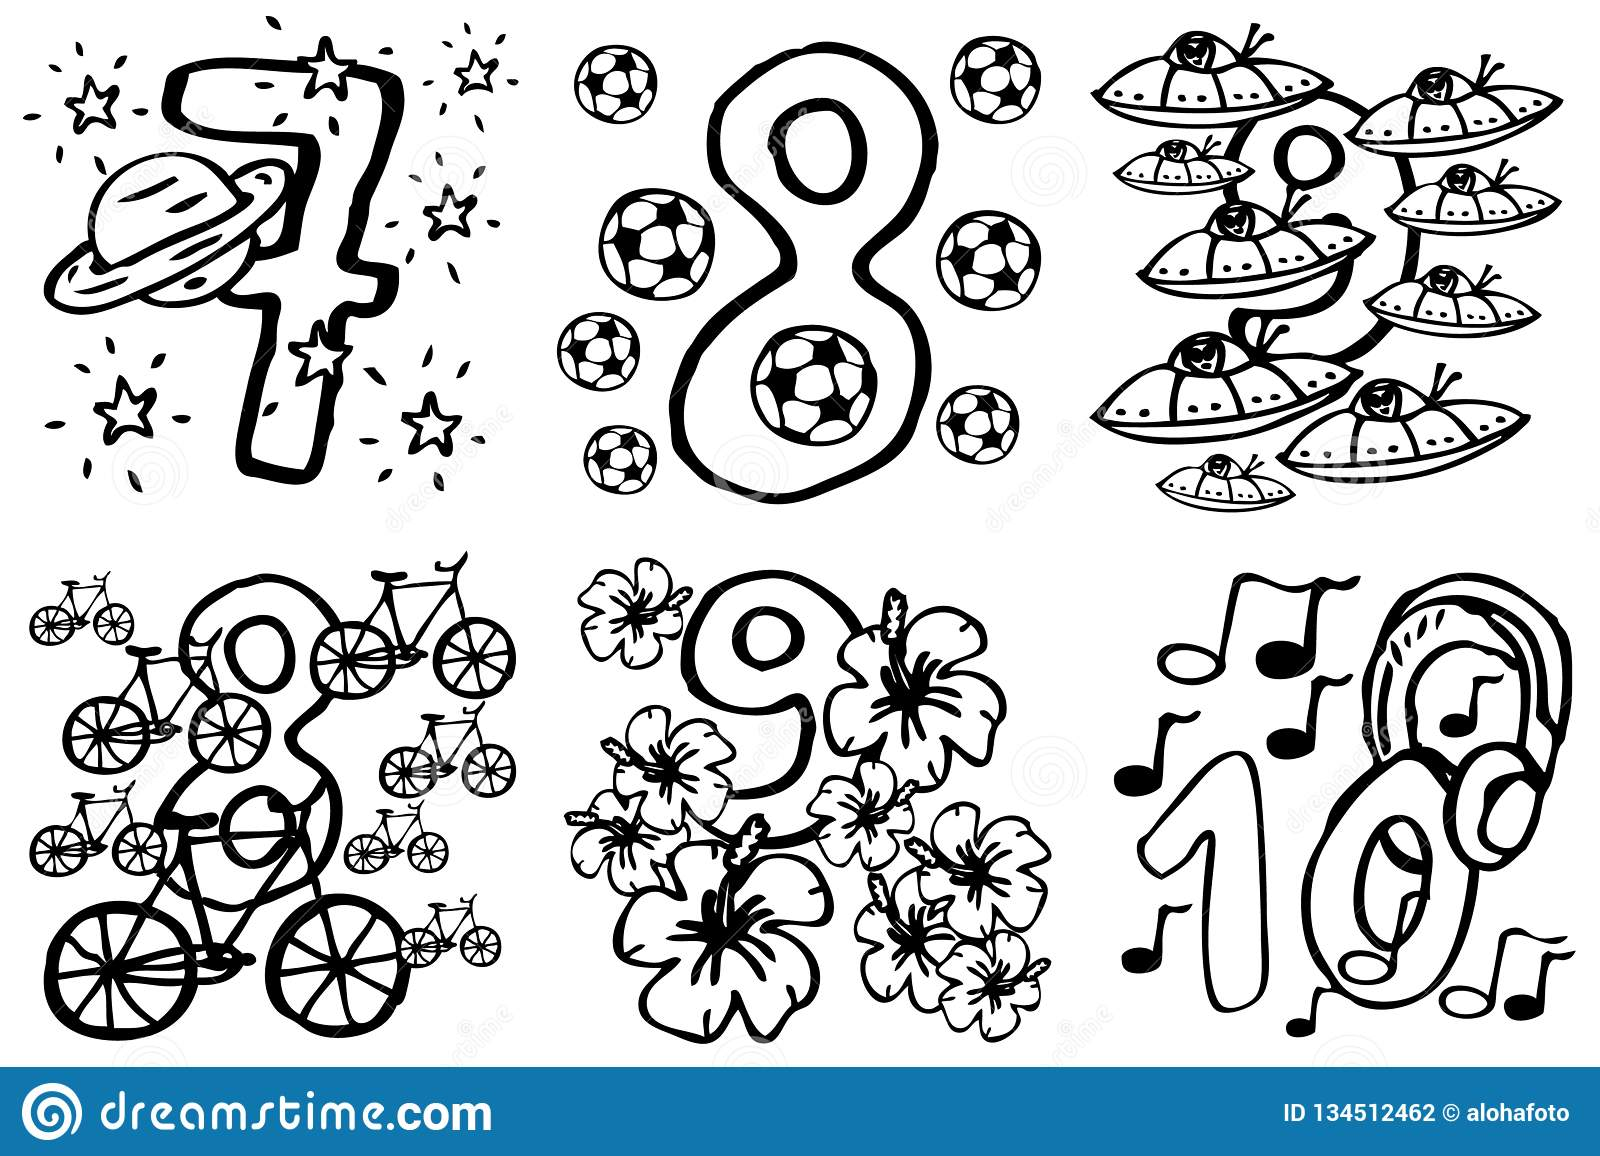 Coloring book - Happy birthday numbers to play and learning numbers with pictures about hobbies from 7-10 for kids